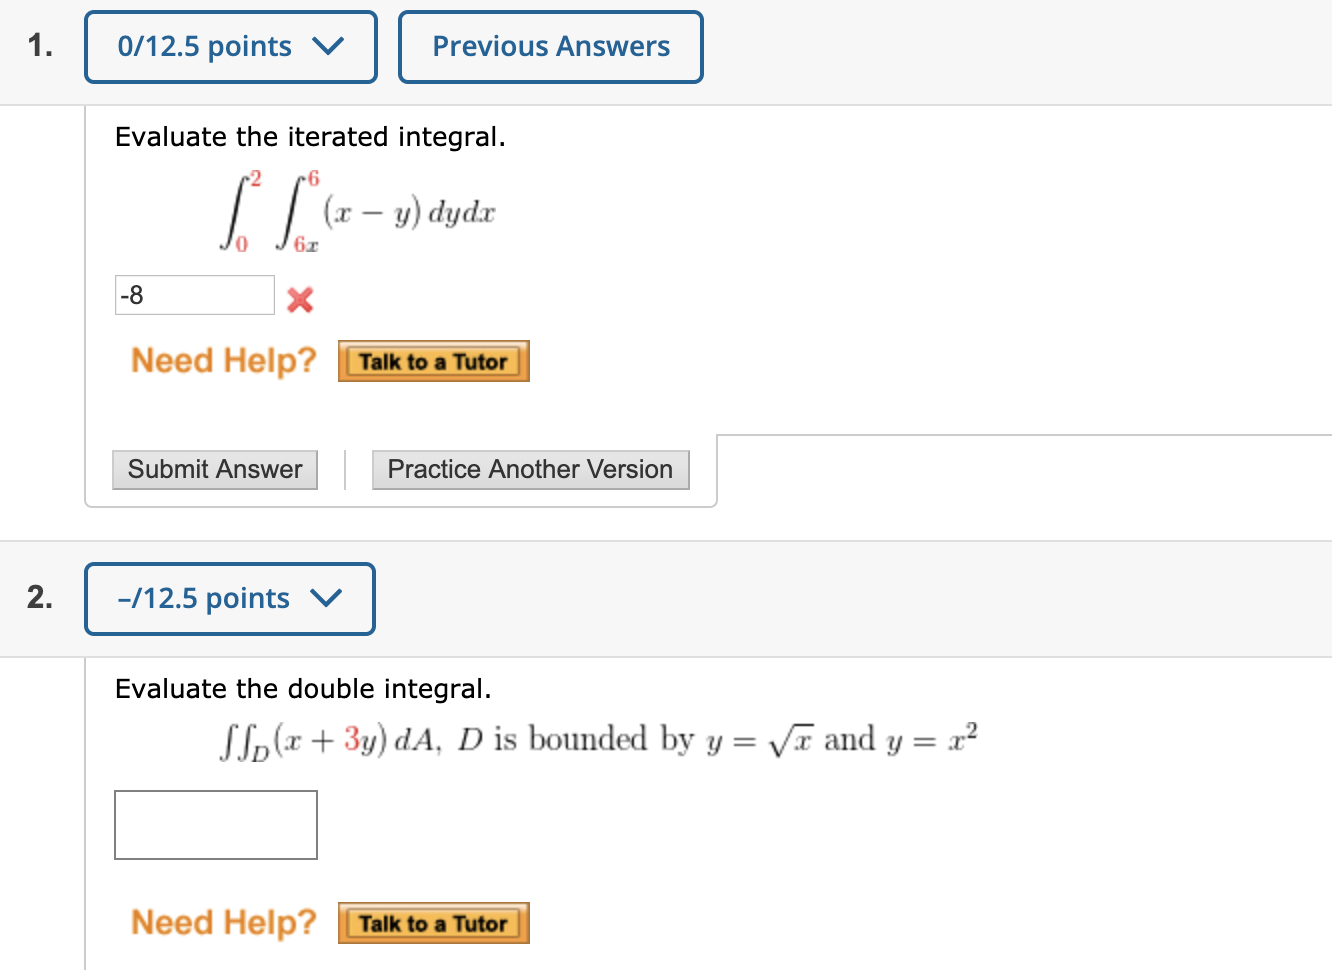 0/12.5 points v. Previous Answers Evaluate the iterated integral. (- y) dydir 0 J6 Need Help? Talk to a Tutor Submit Answer P